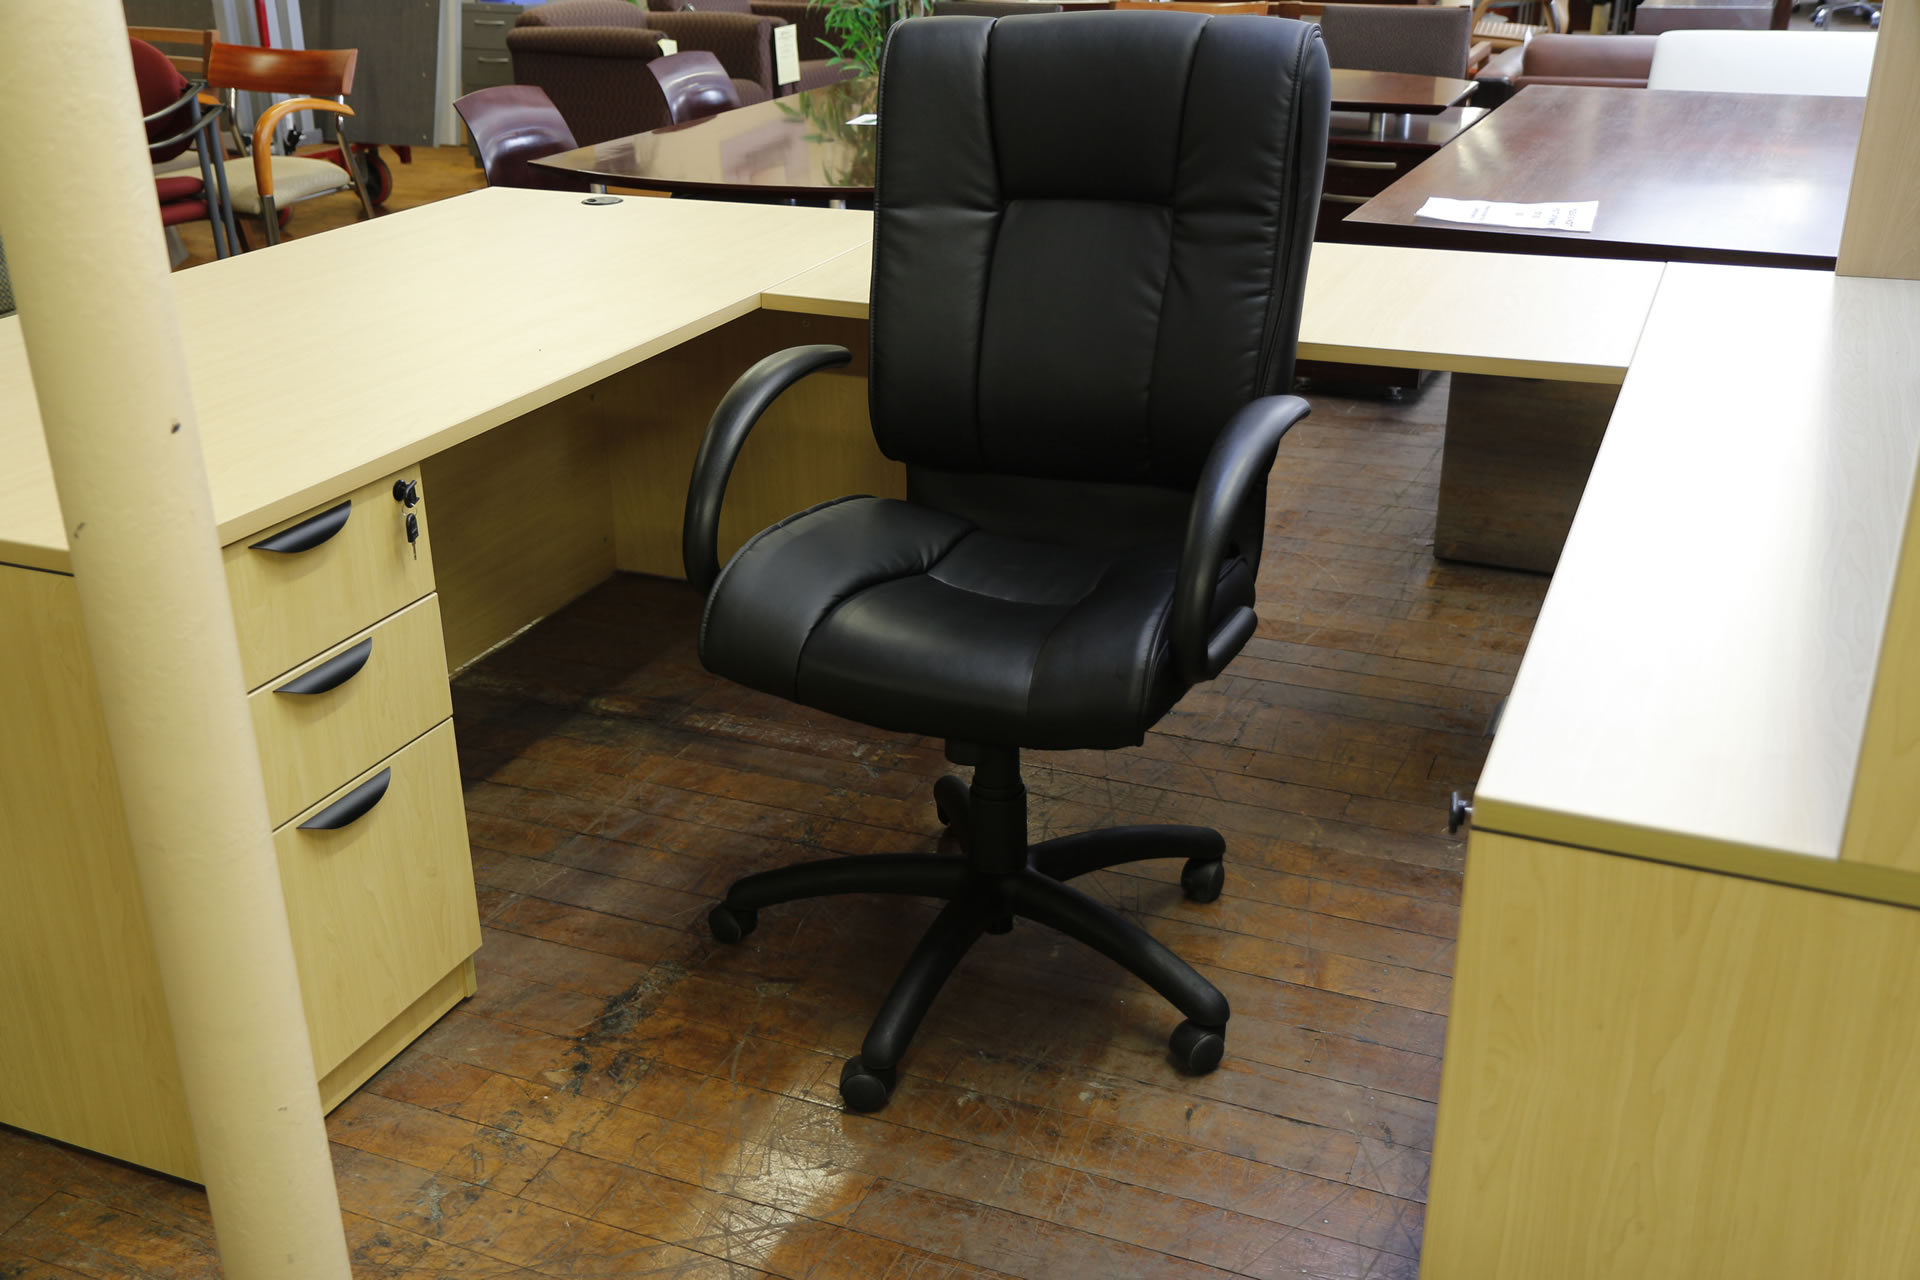 peartreeofficefurniture_peartreeofficefurniture_peartreeofficefurniture_2015-06-18_20-56-03.jpg